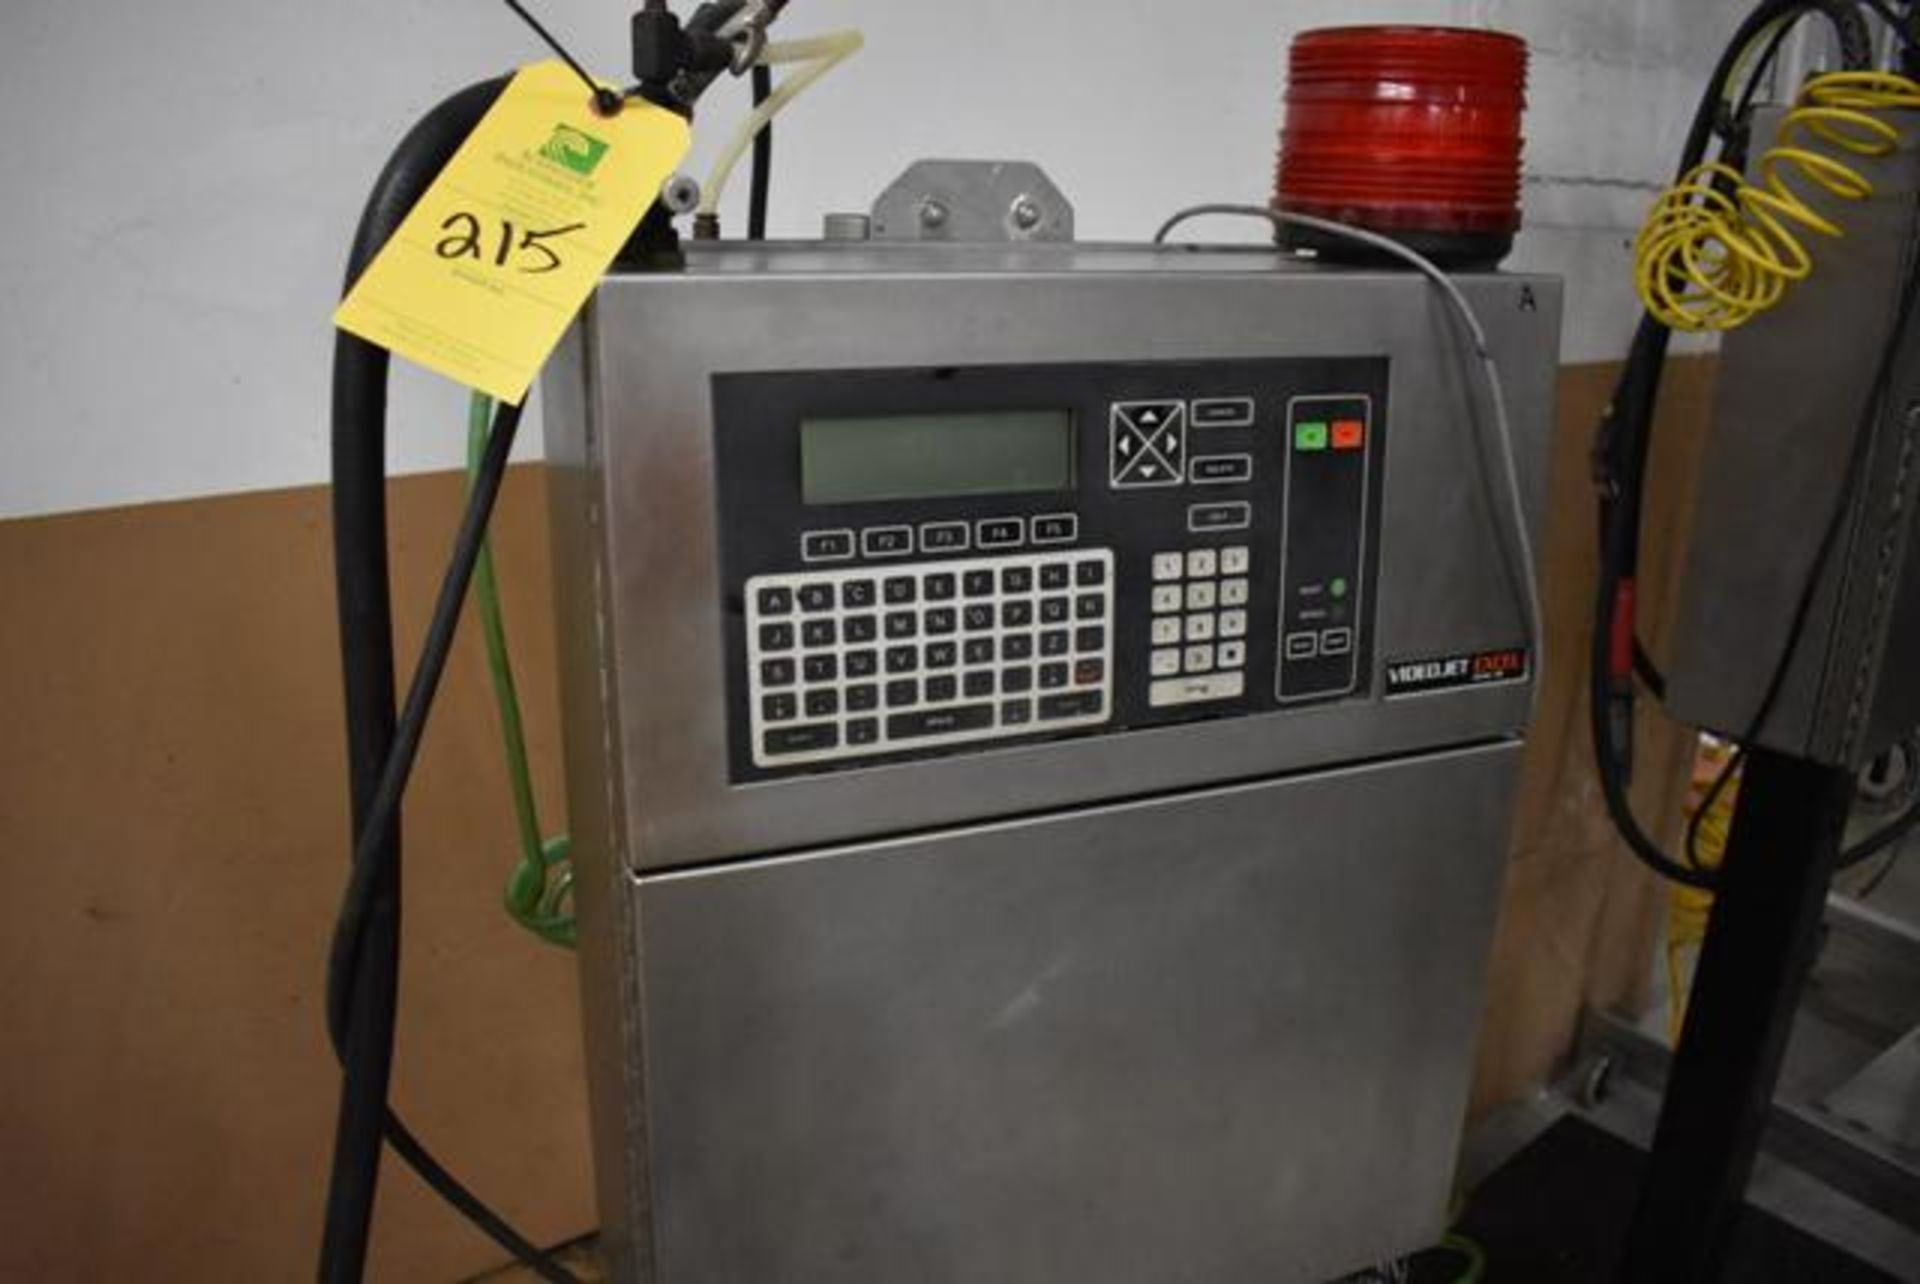 Lot 215 - VideoJet Excel Series 100 Includes SS Stand, Loading Fee: $50